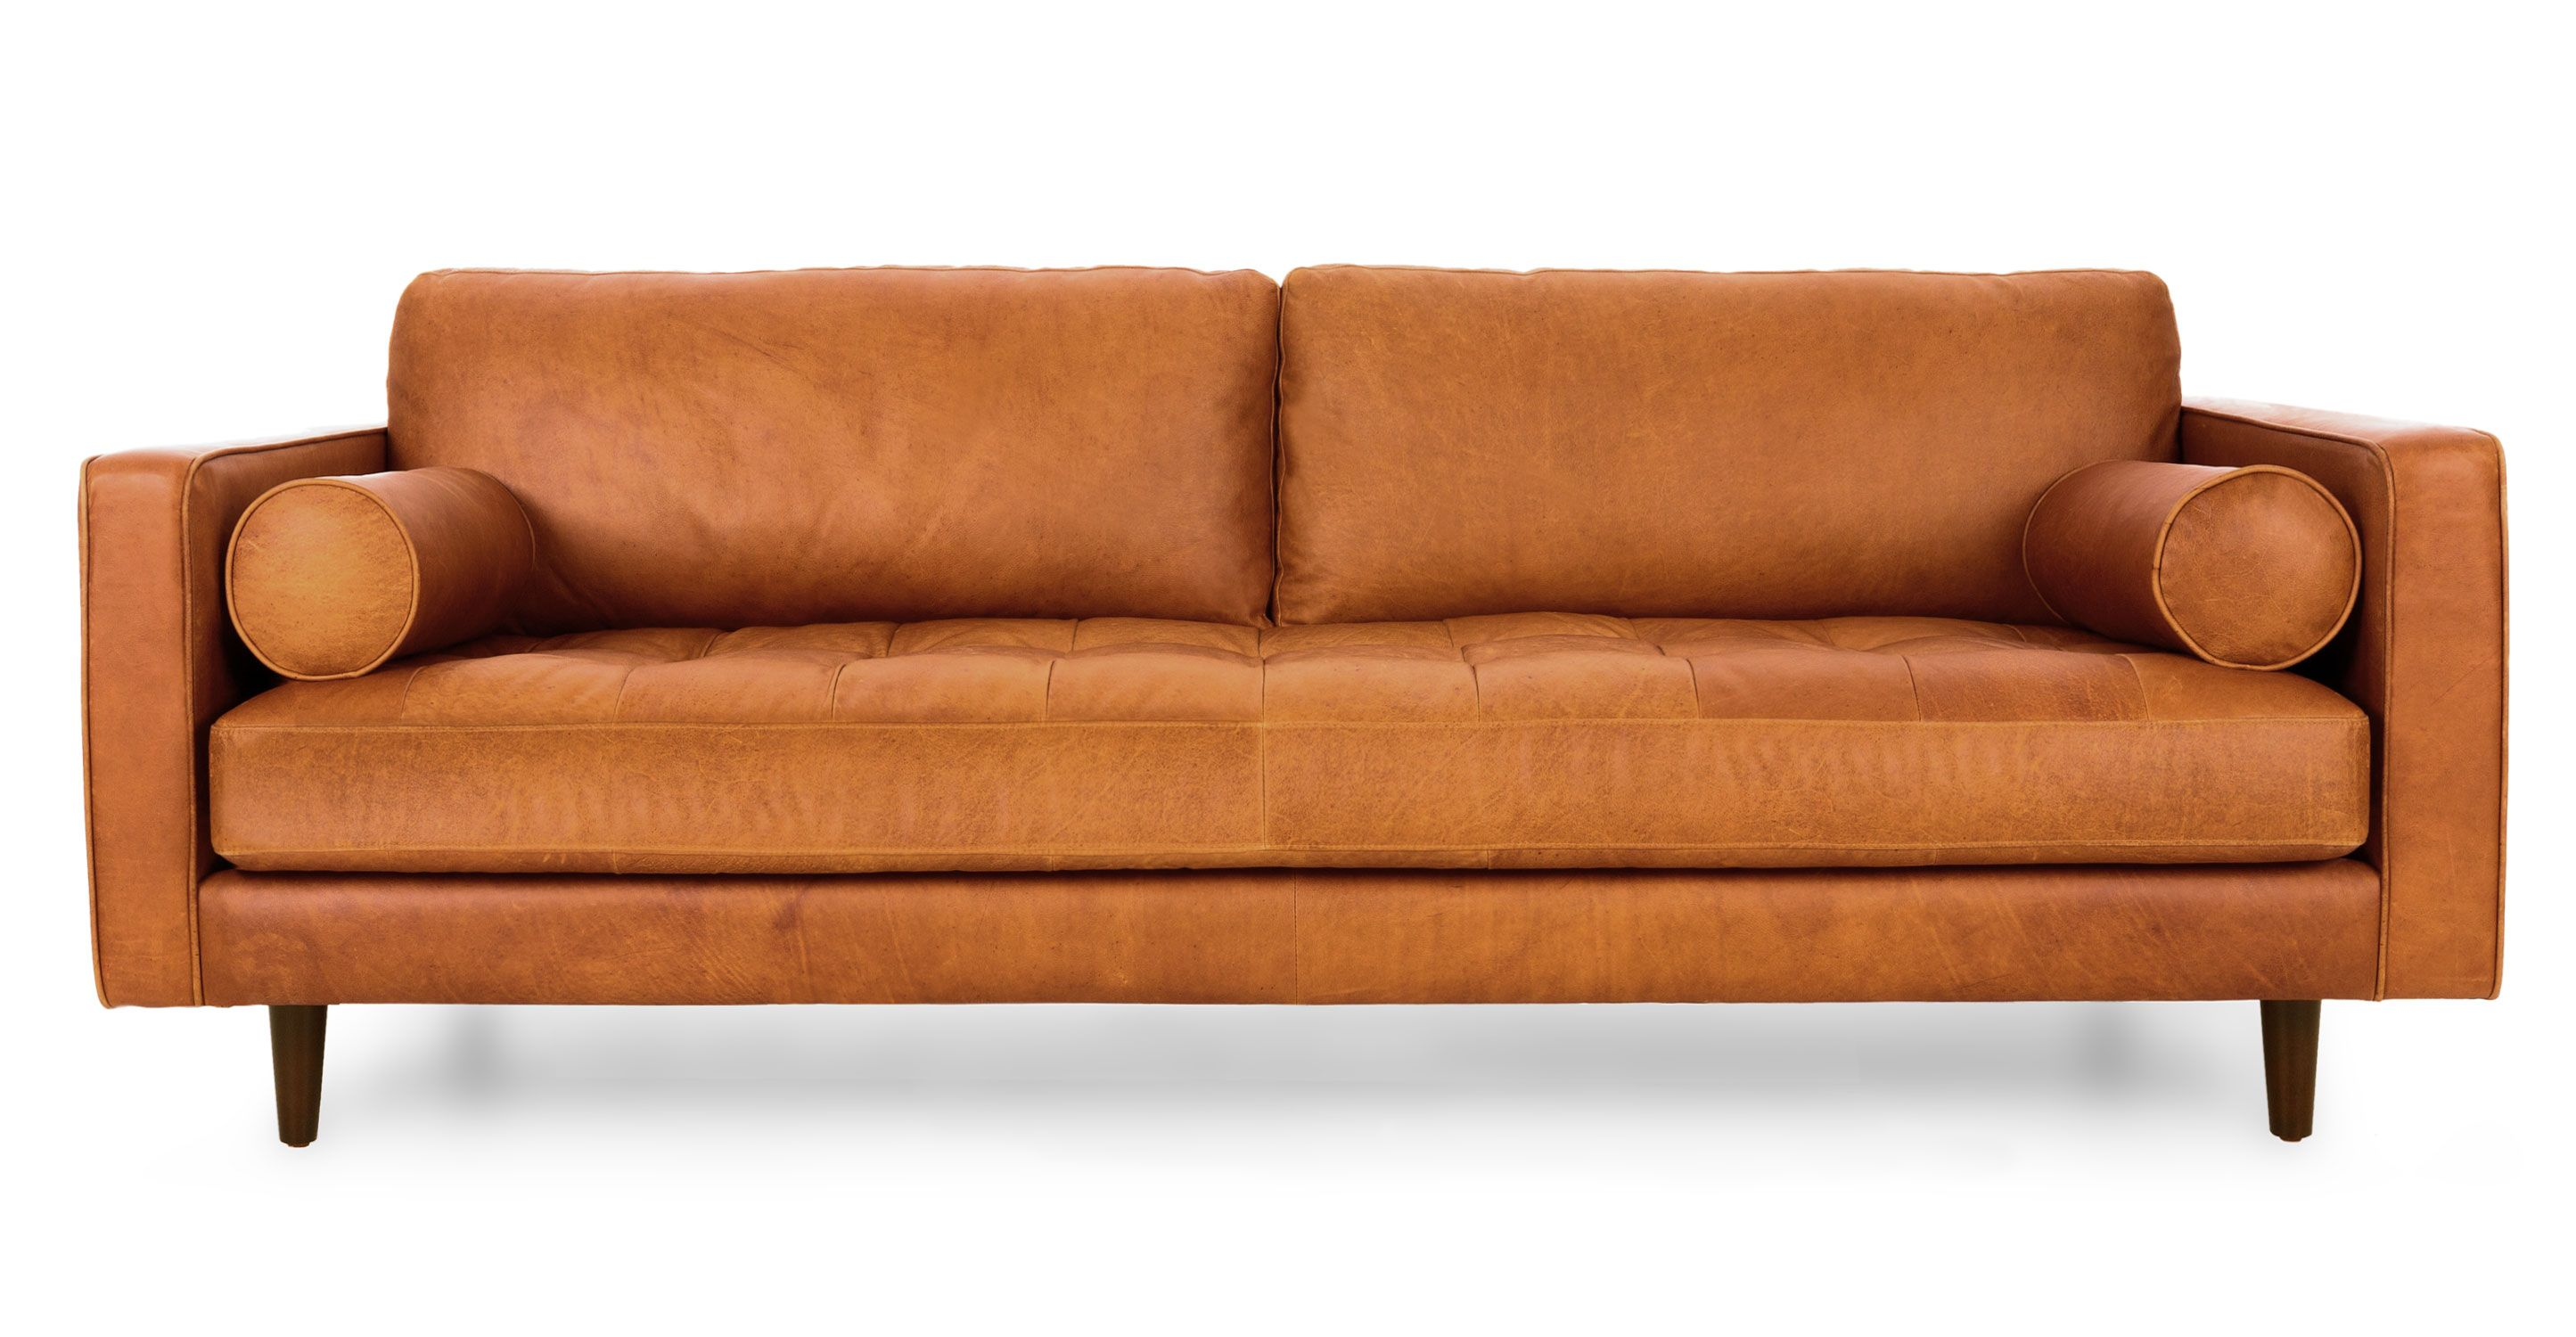 Tan brown leather sofa italian leather article sven modern furniture tan sofa Contemporary leather sofa